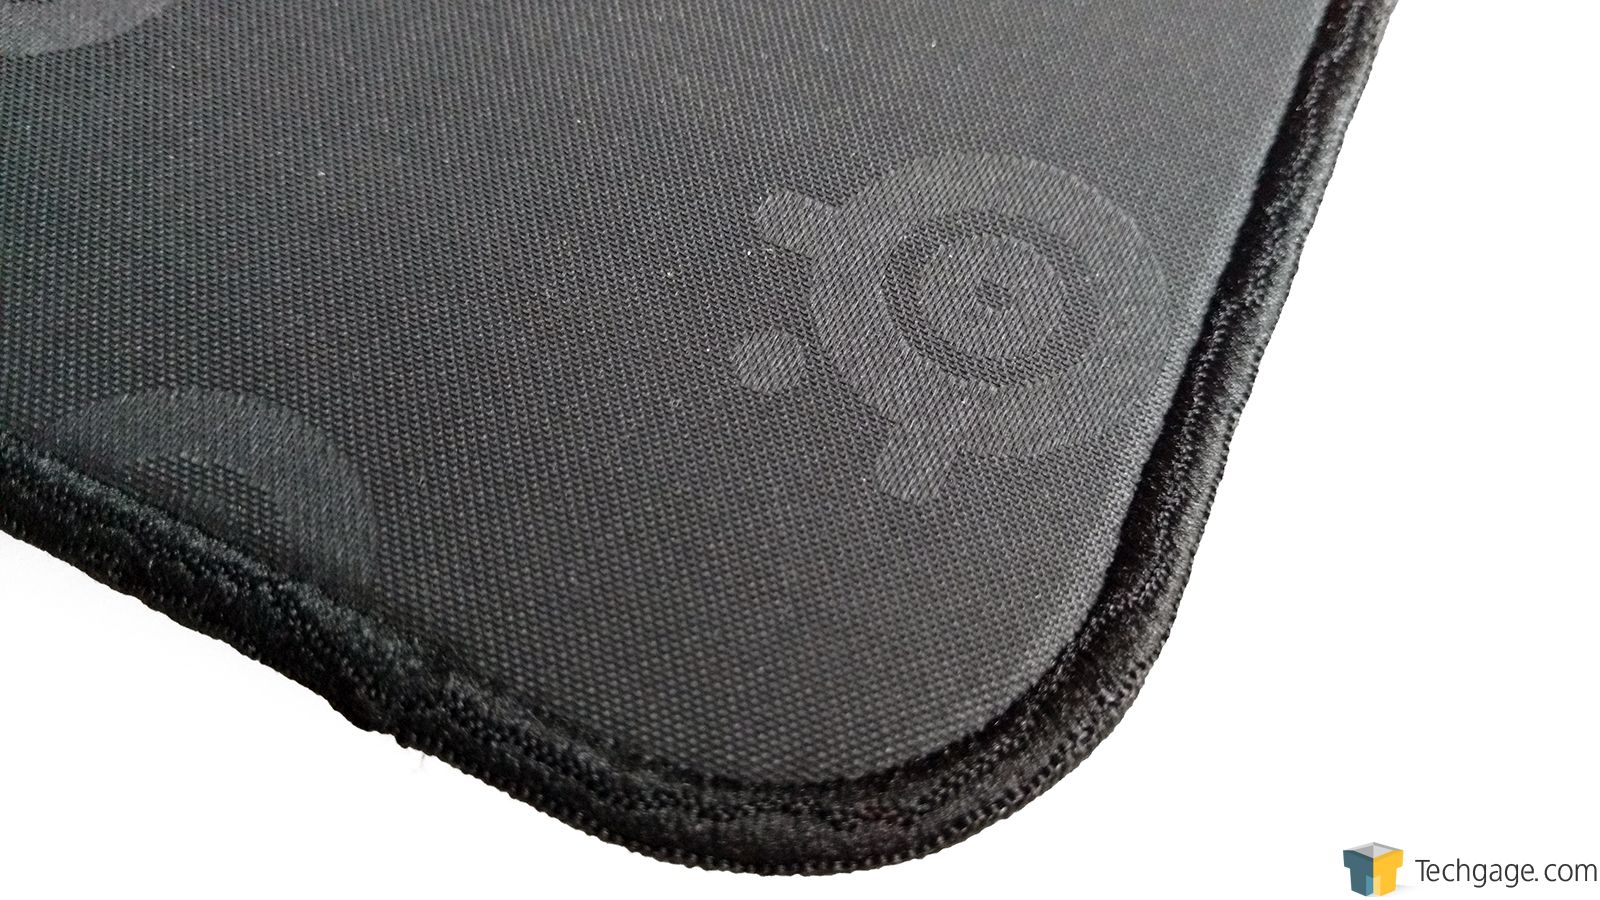 Steelseries Qck Limited Gaming Mousepads Review Mousepad Black Techgage